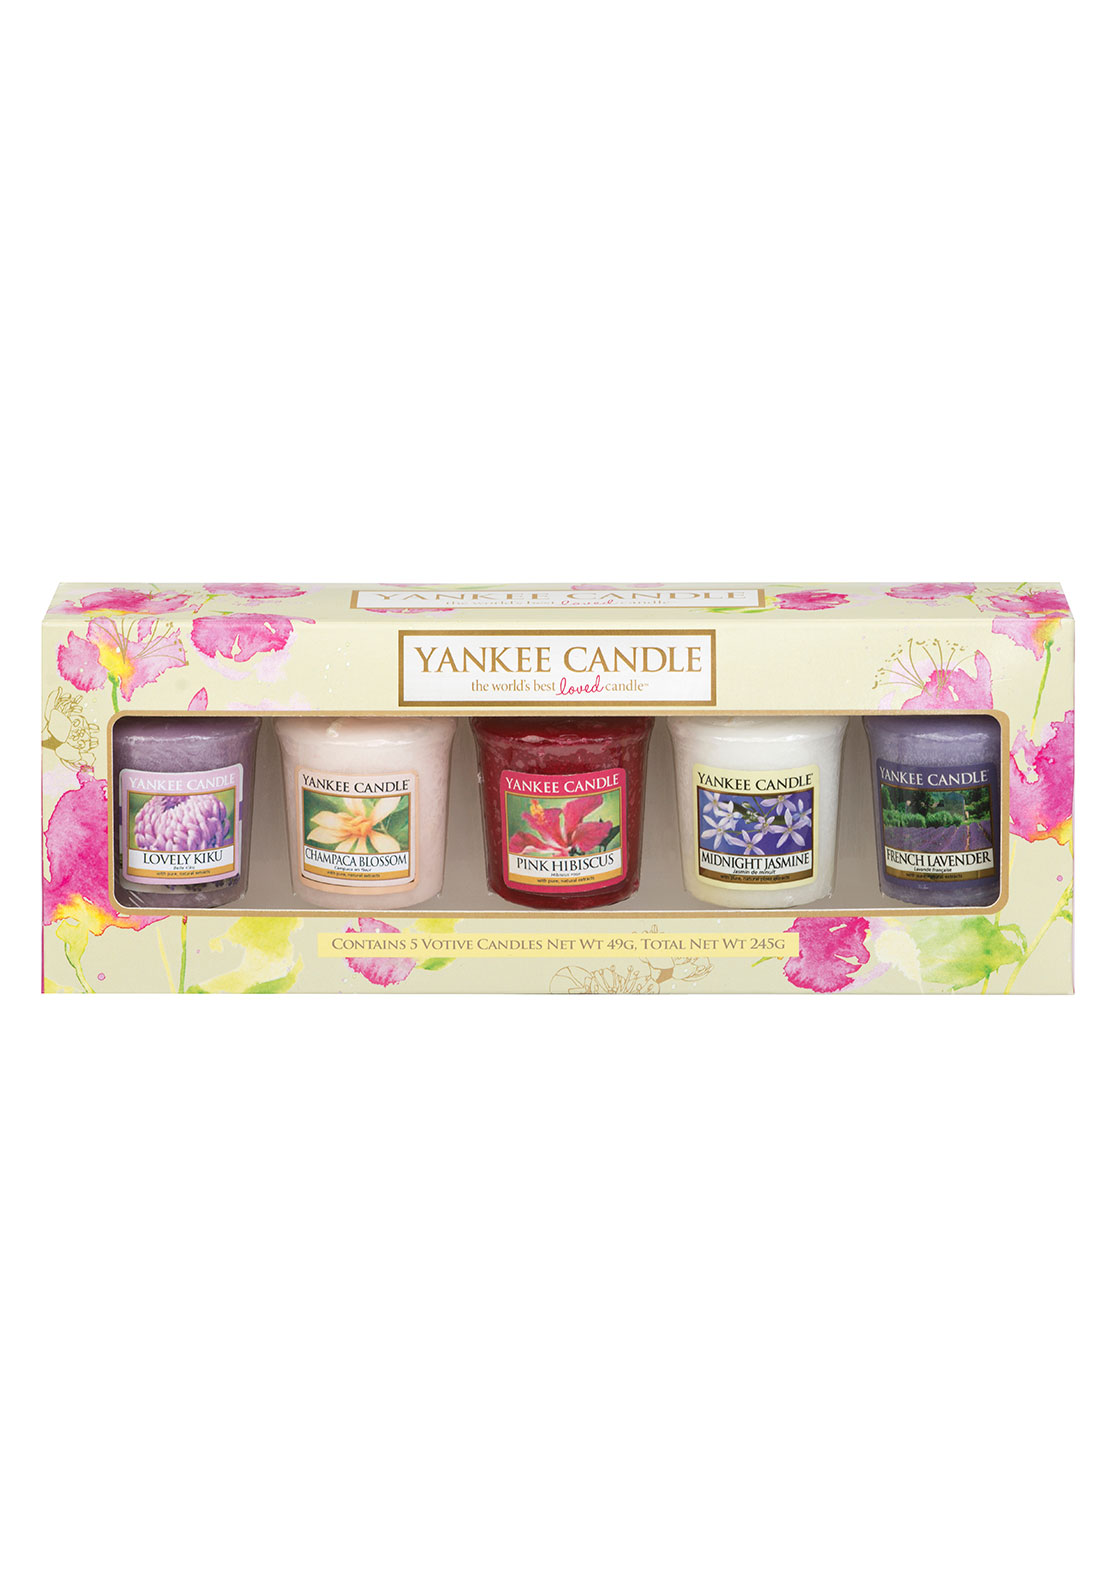 Yankee Candle Classic 5 Votives, Spring 2014